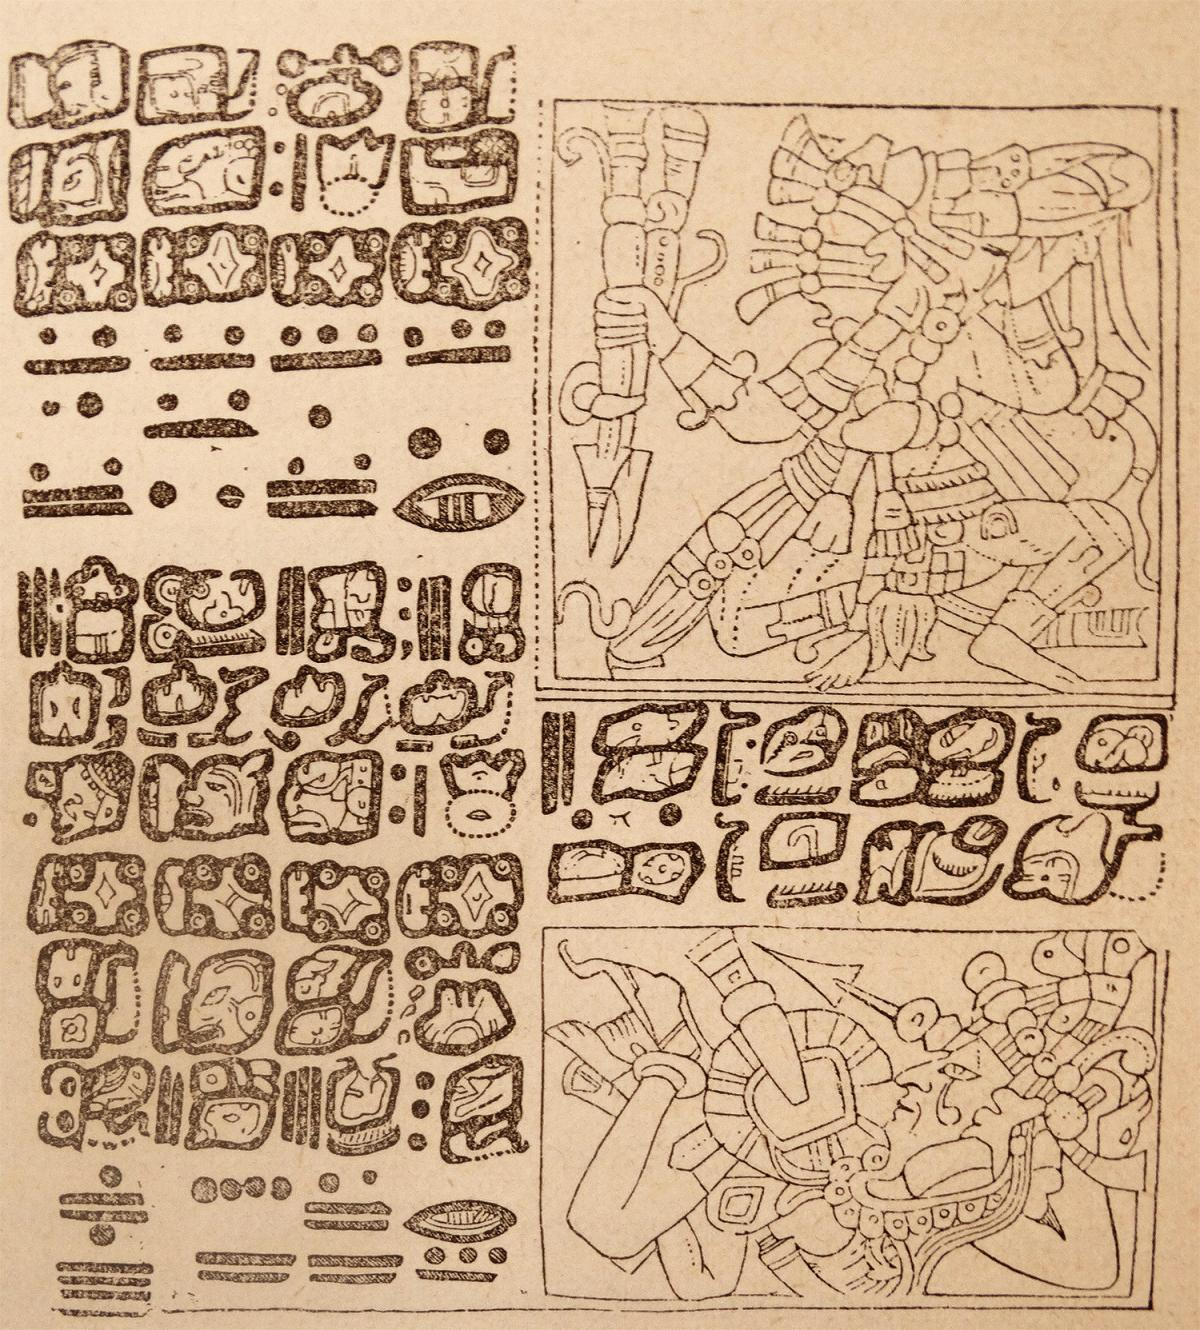 Section of the Dresden Codex which shows gods and demons